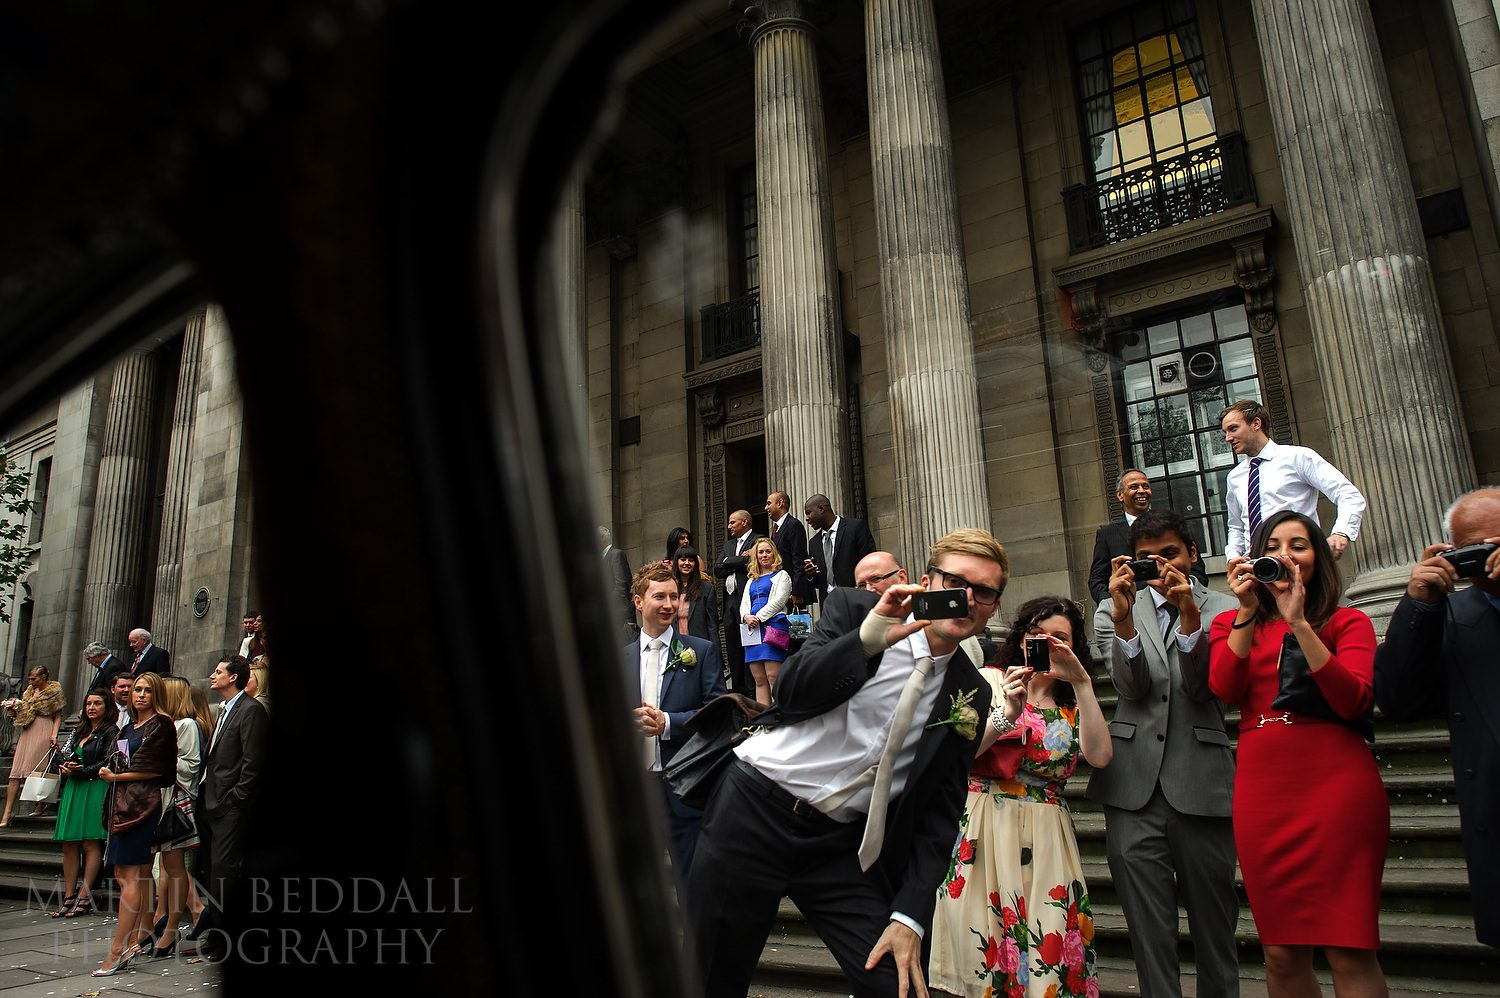 Guests see off the couple in their wedding car